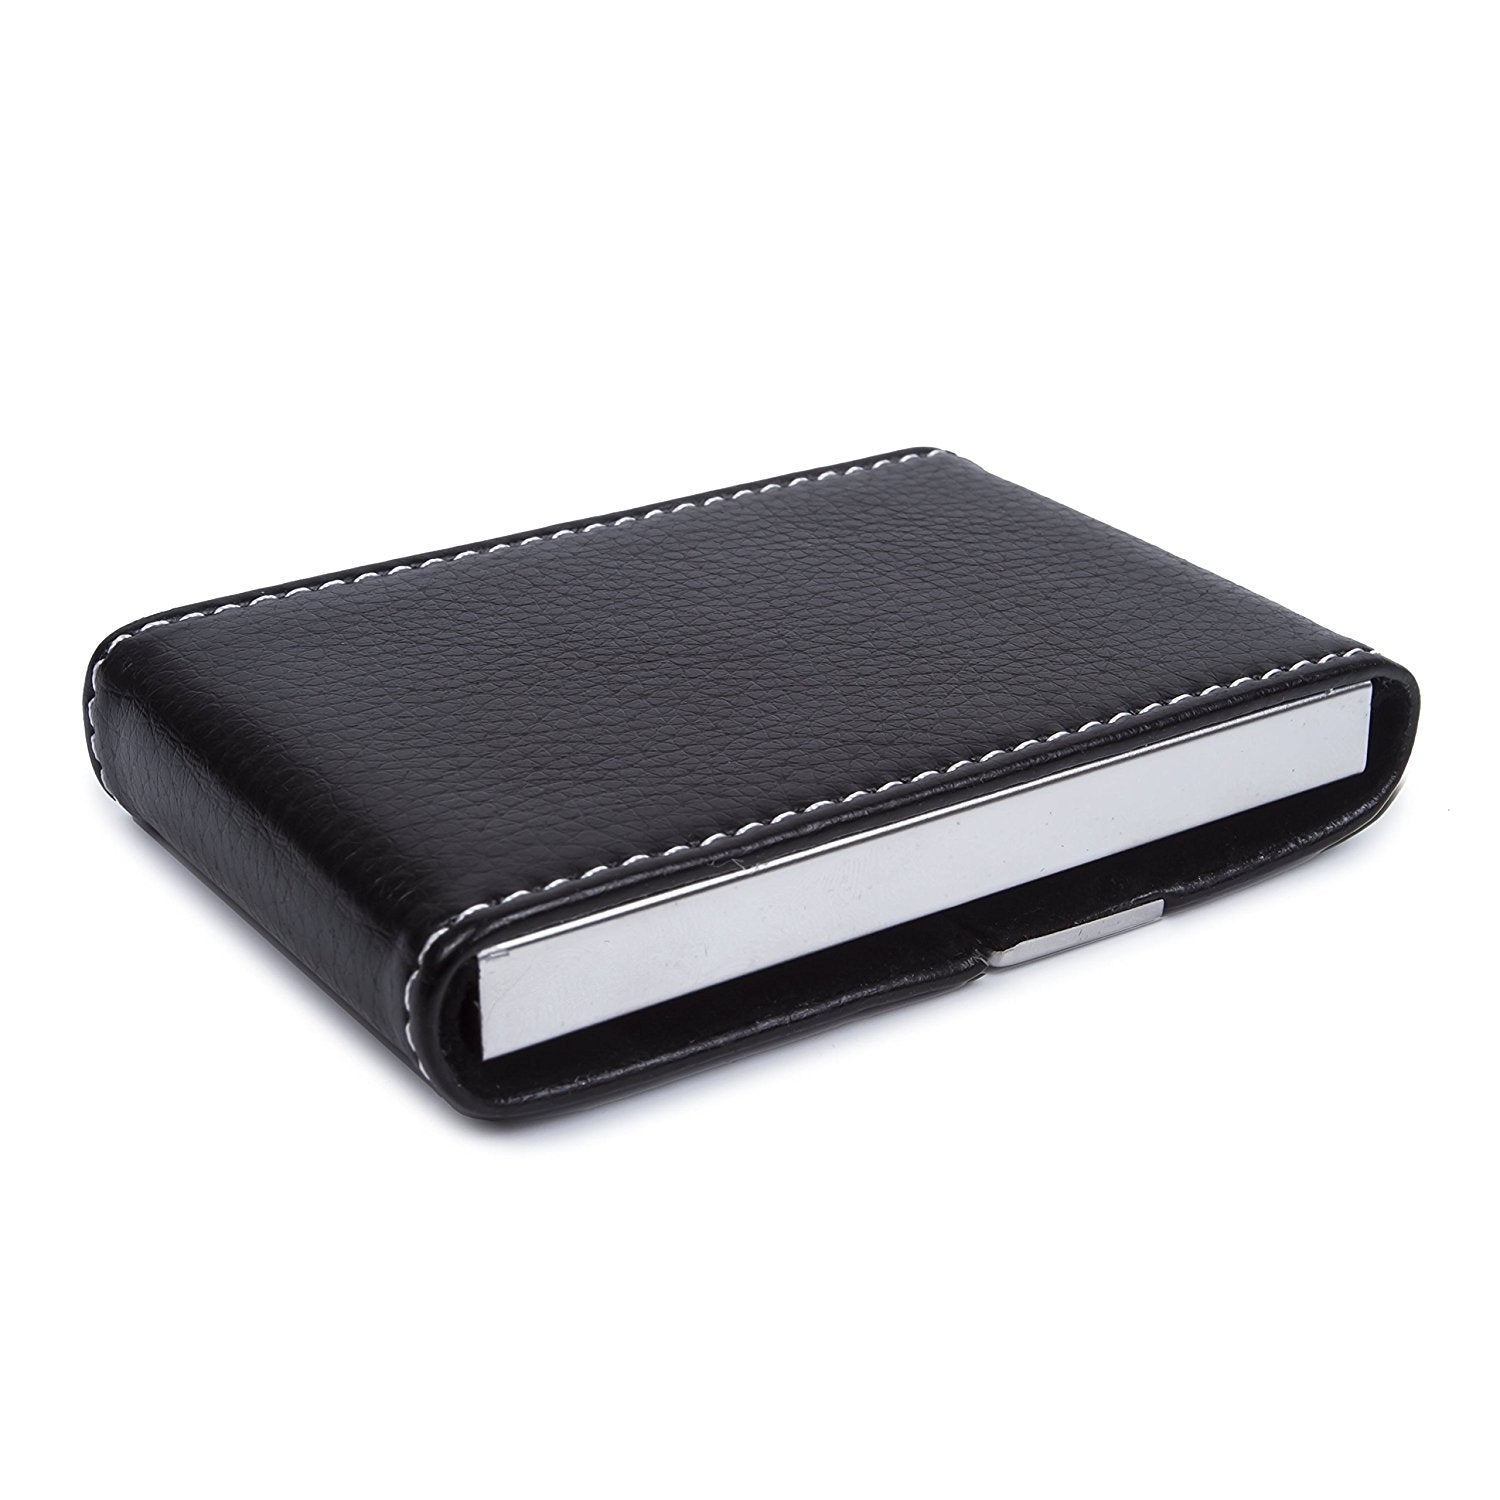 Business card case for men image collections free business cards black business card holder choice image free business cards business card holder pu leather stainless steel magicingreecefo Gallery